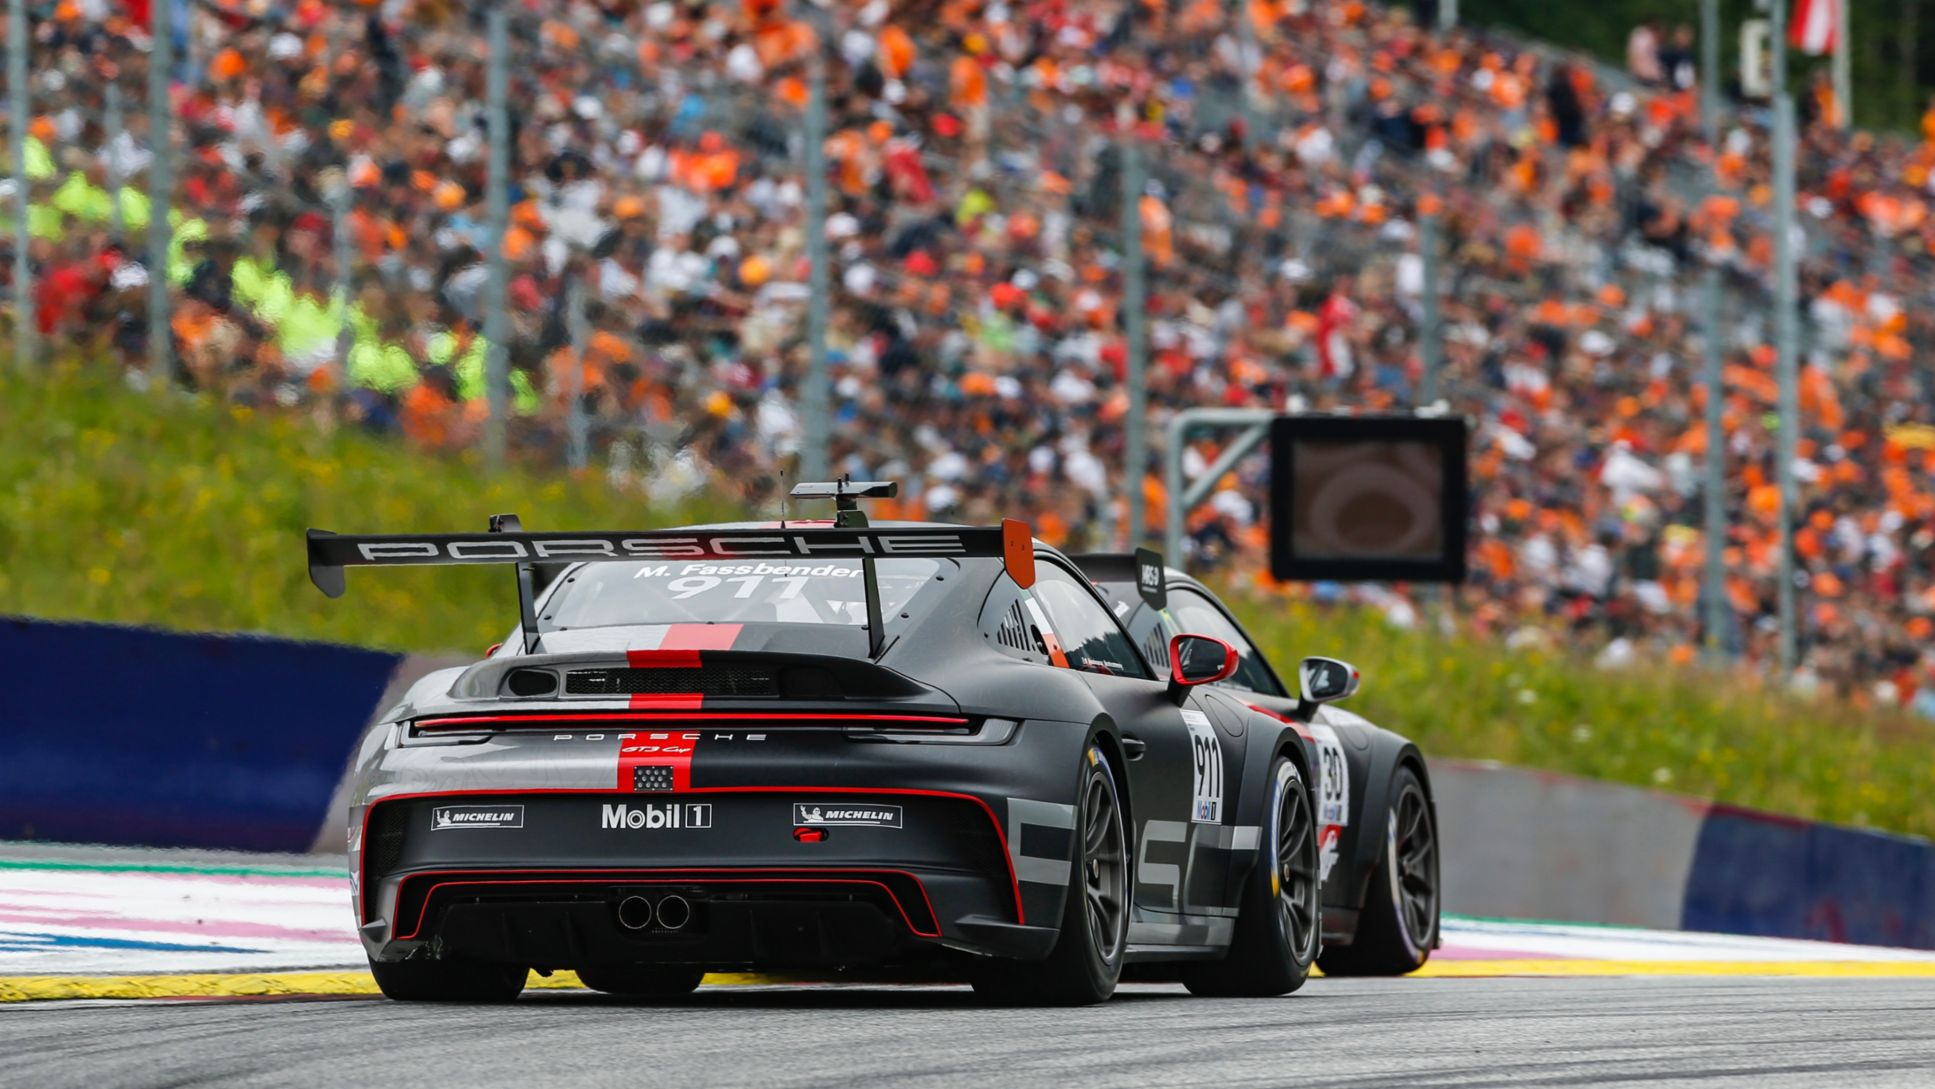 Porsche Supercup contests its 300th race at Spa-Francorchamps - Image 6